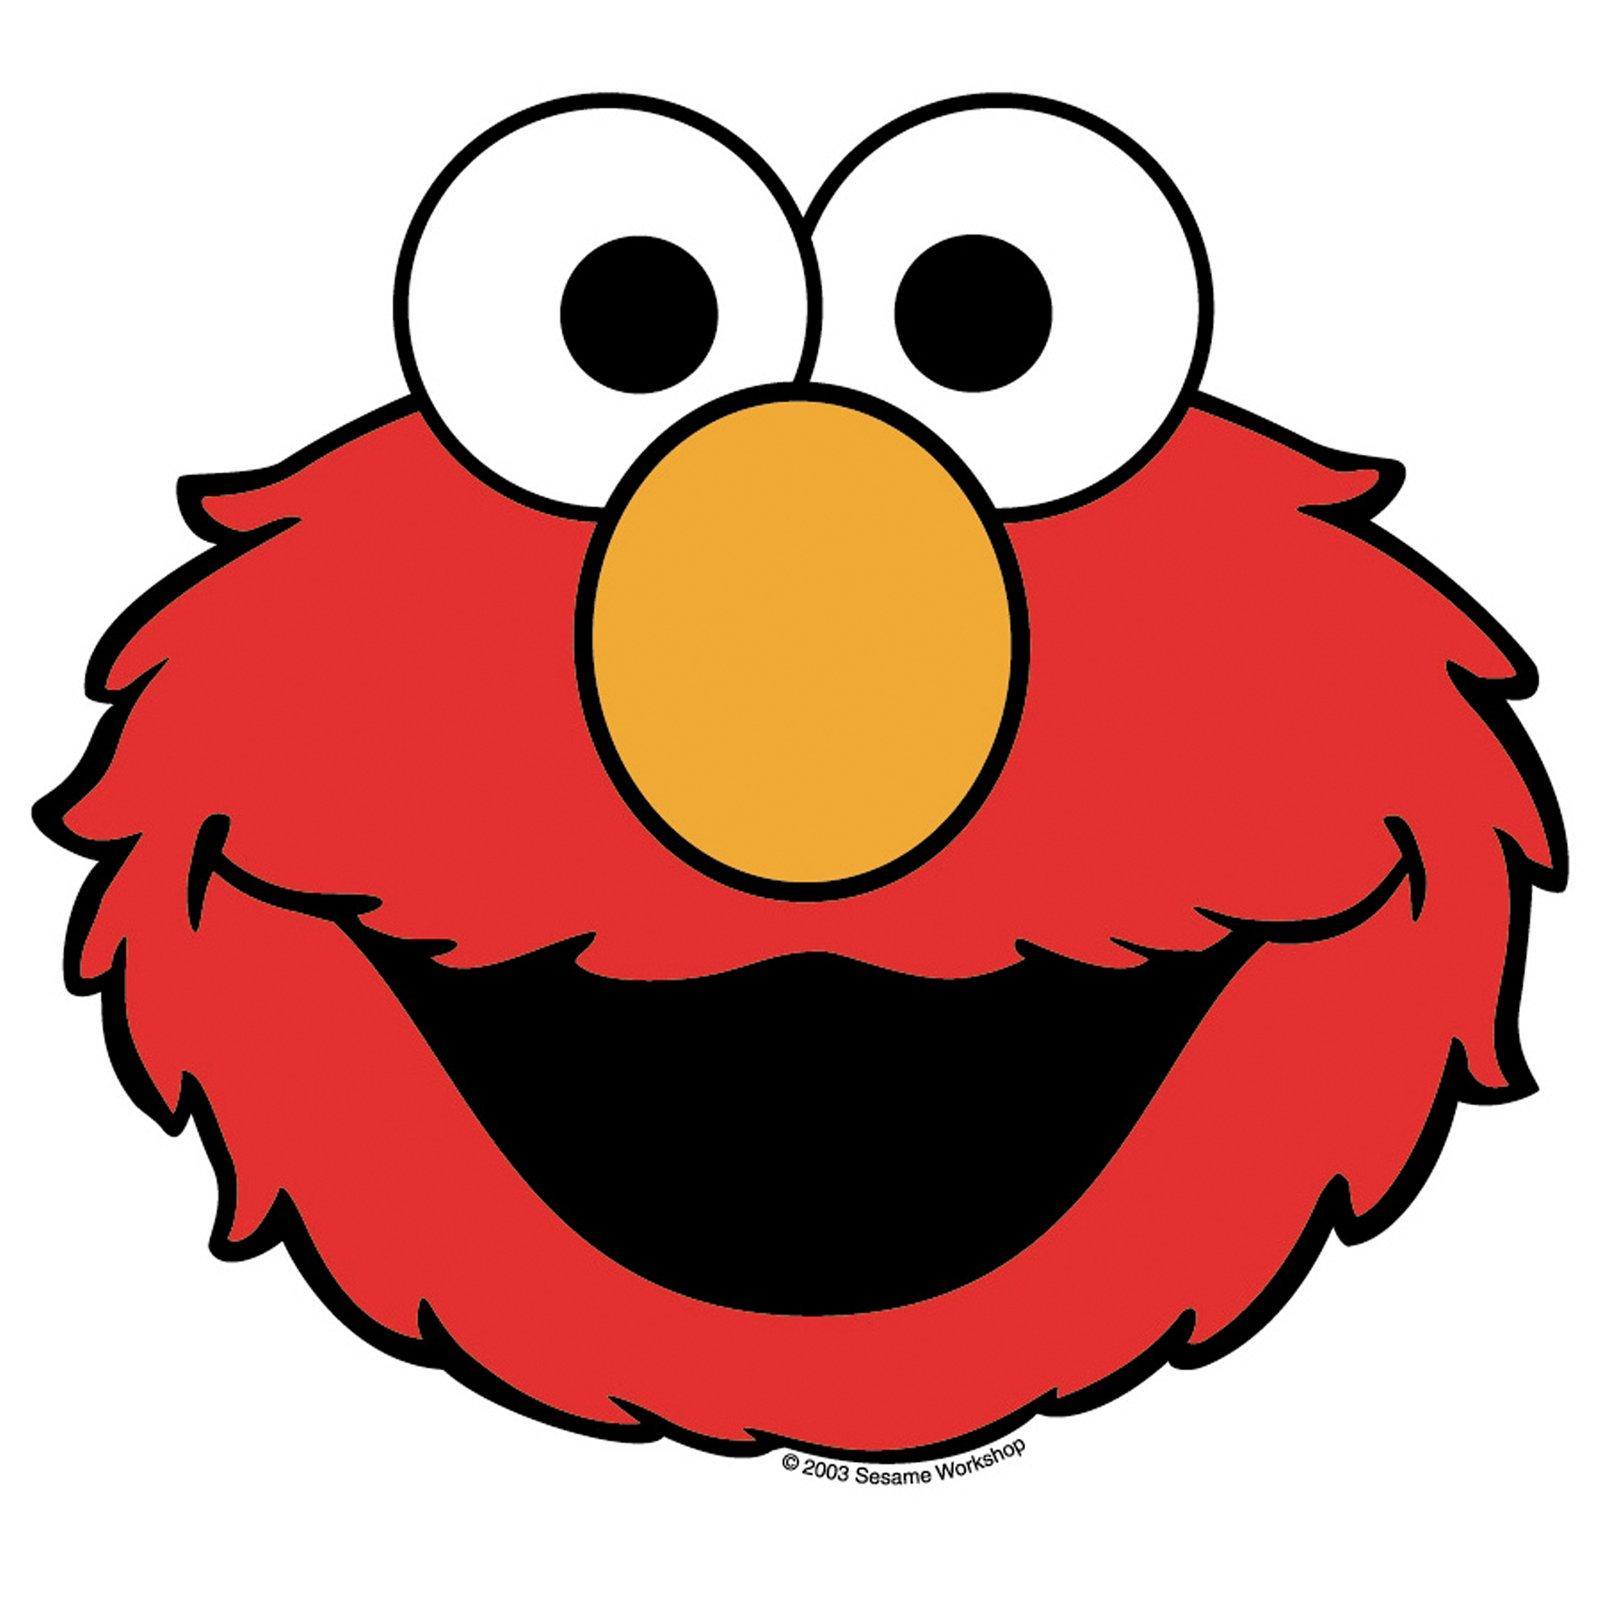 Do You Love Elmo?